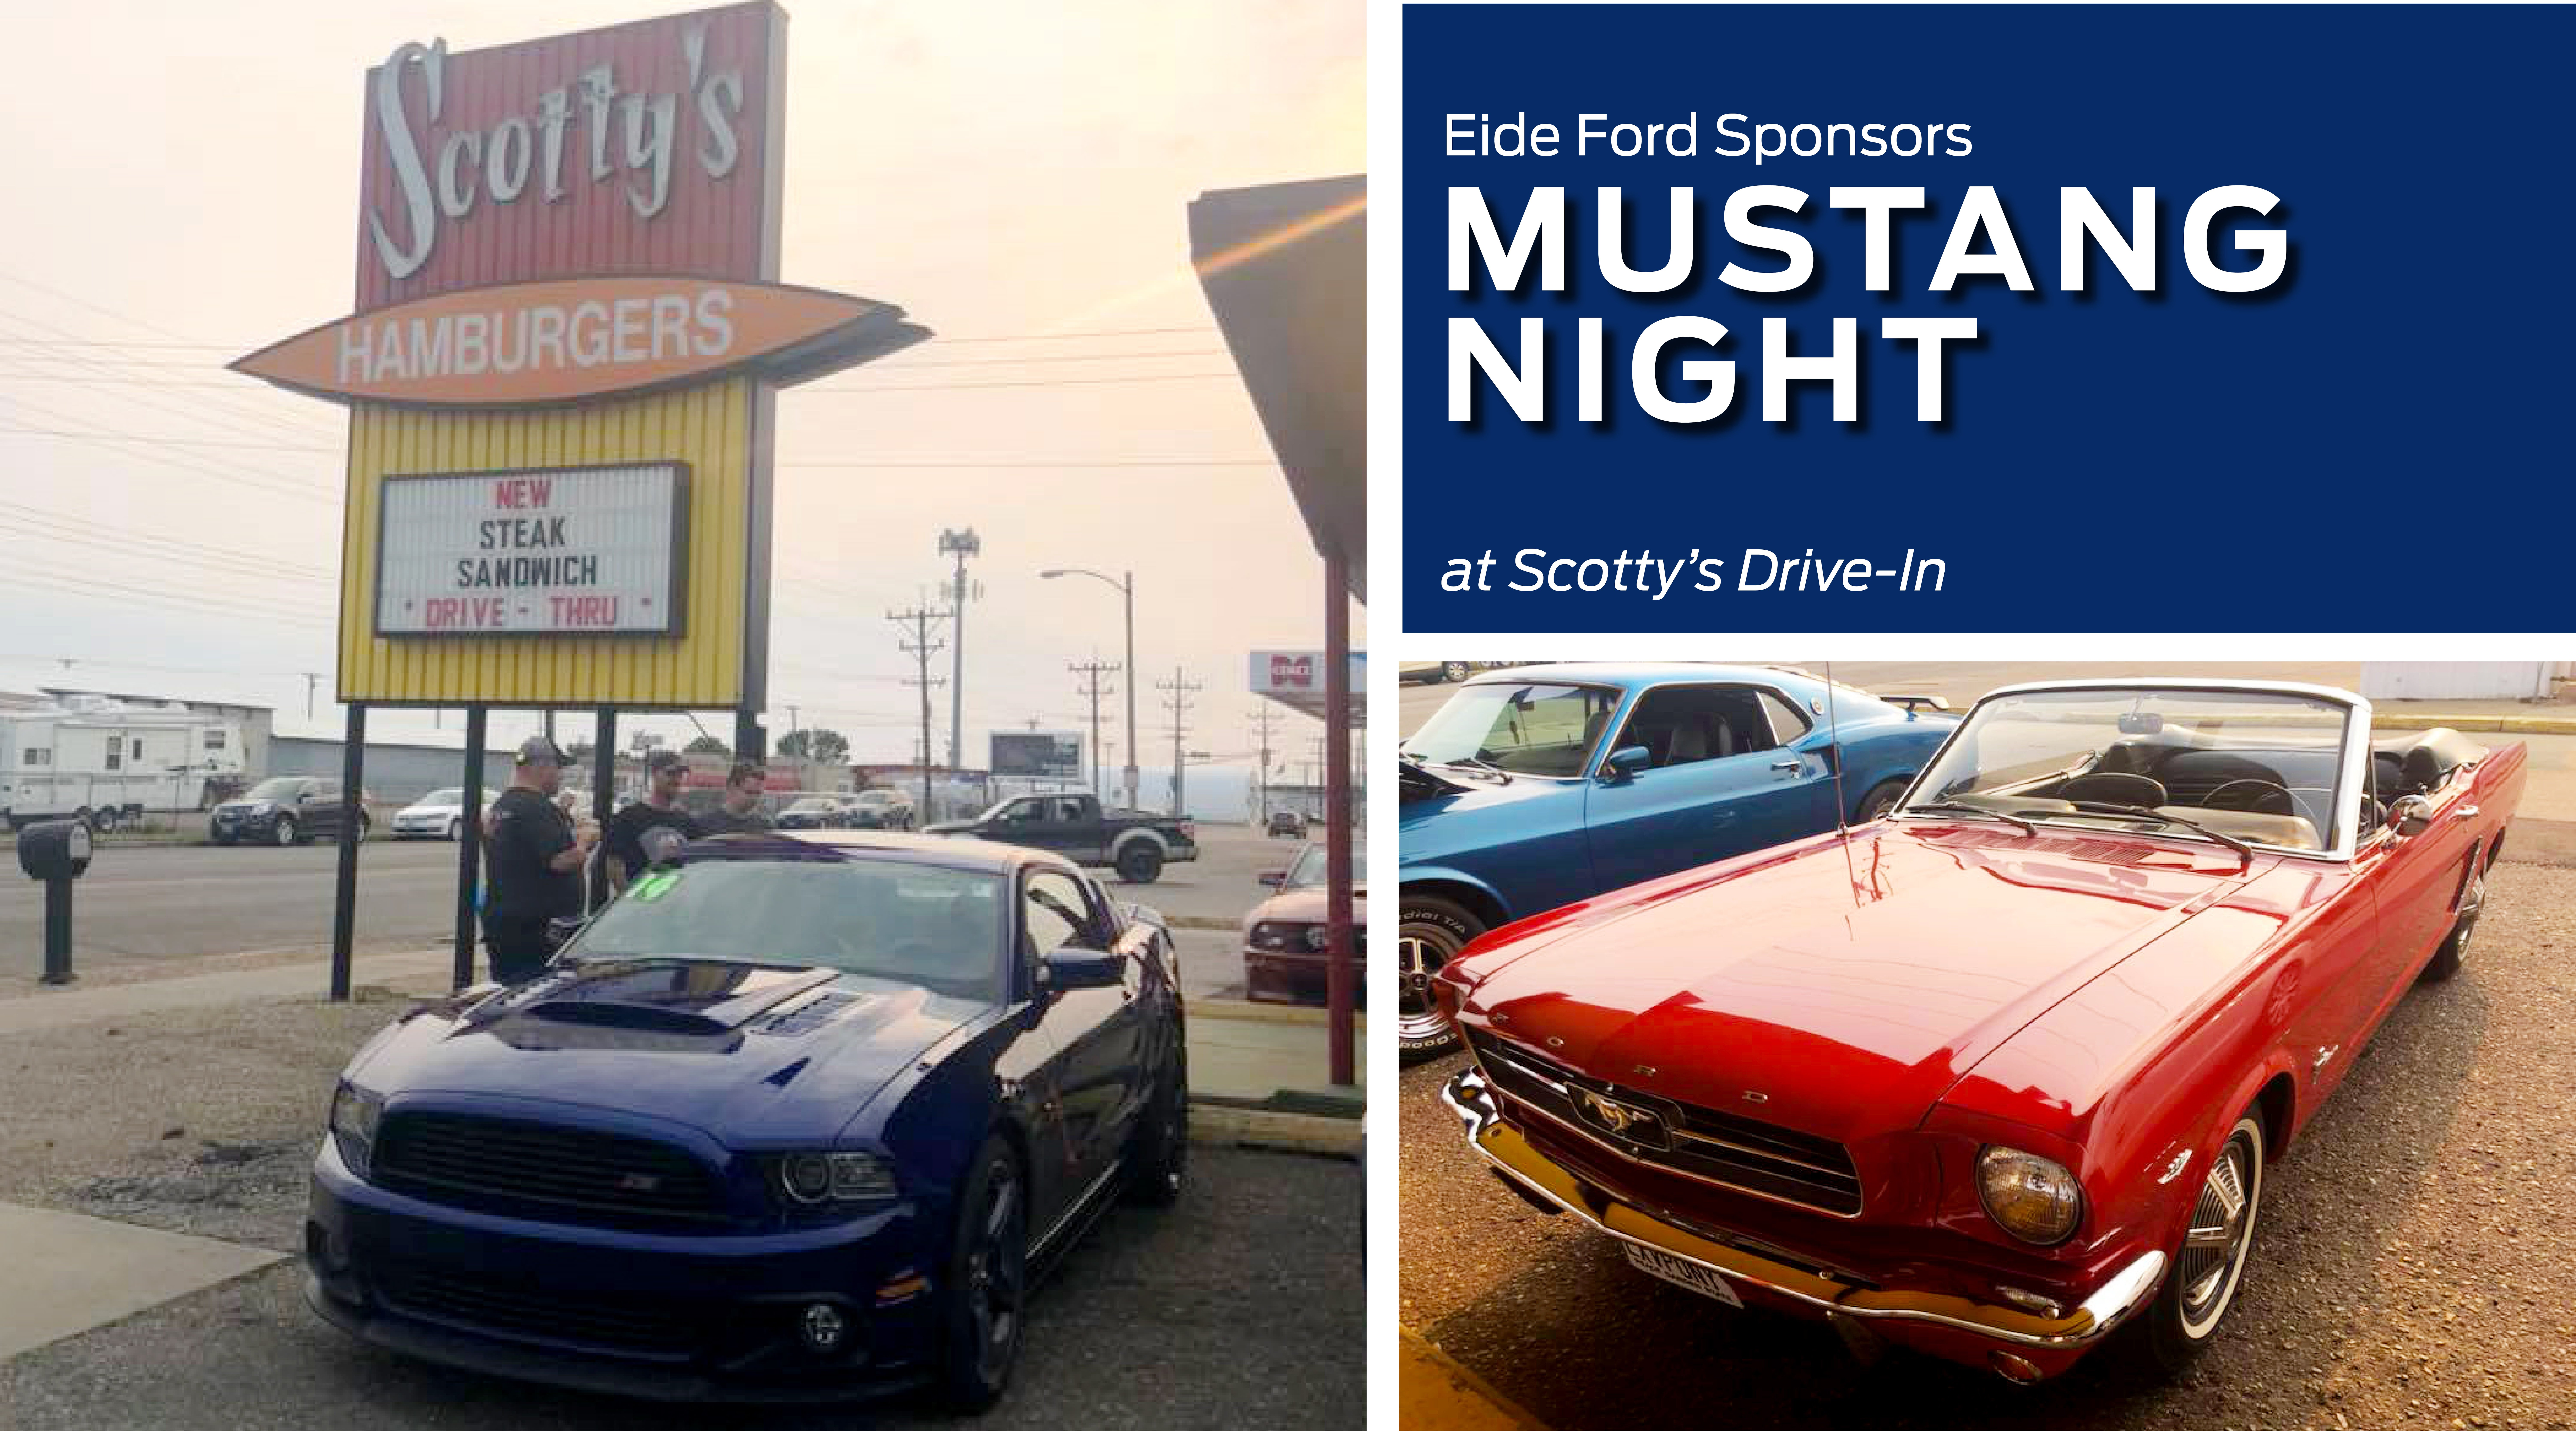 Eide Ford Mustang Night at Scotty's Drive-In